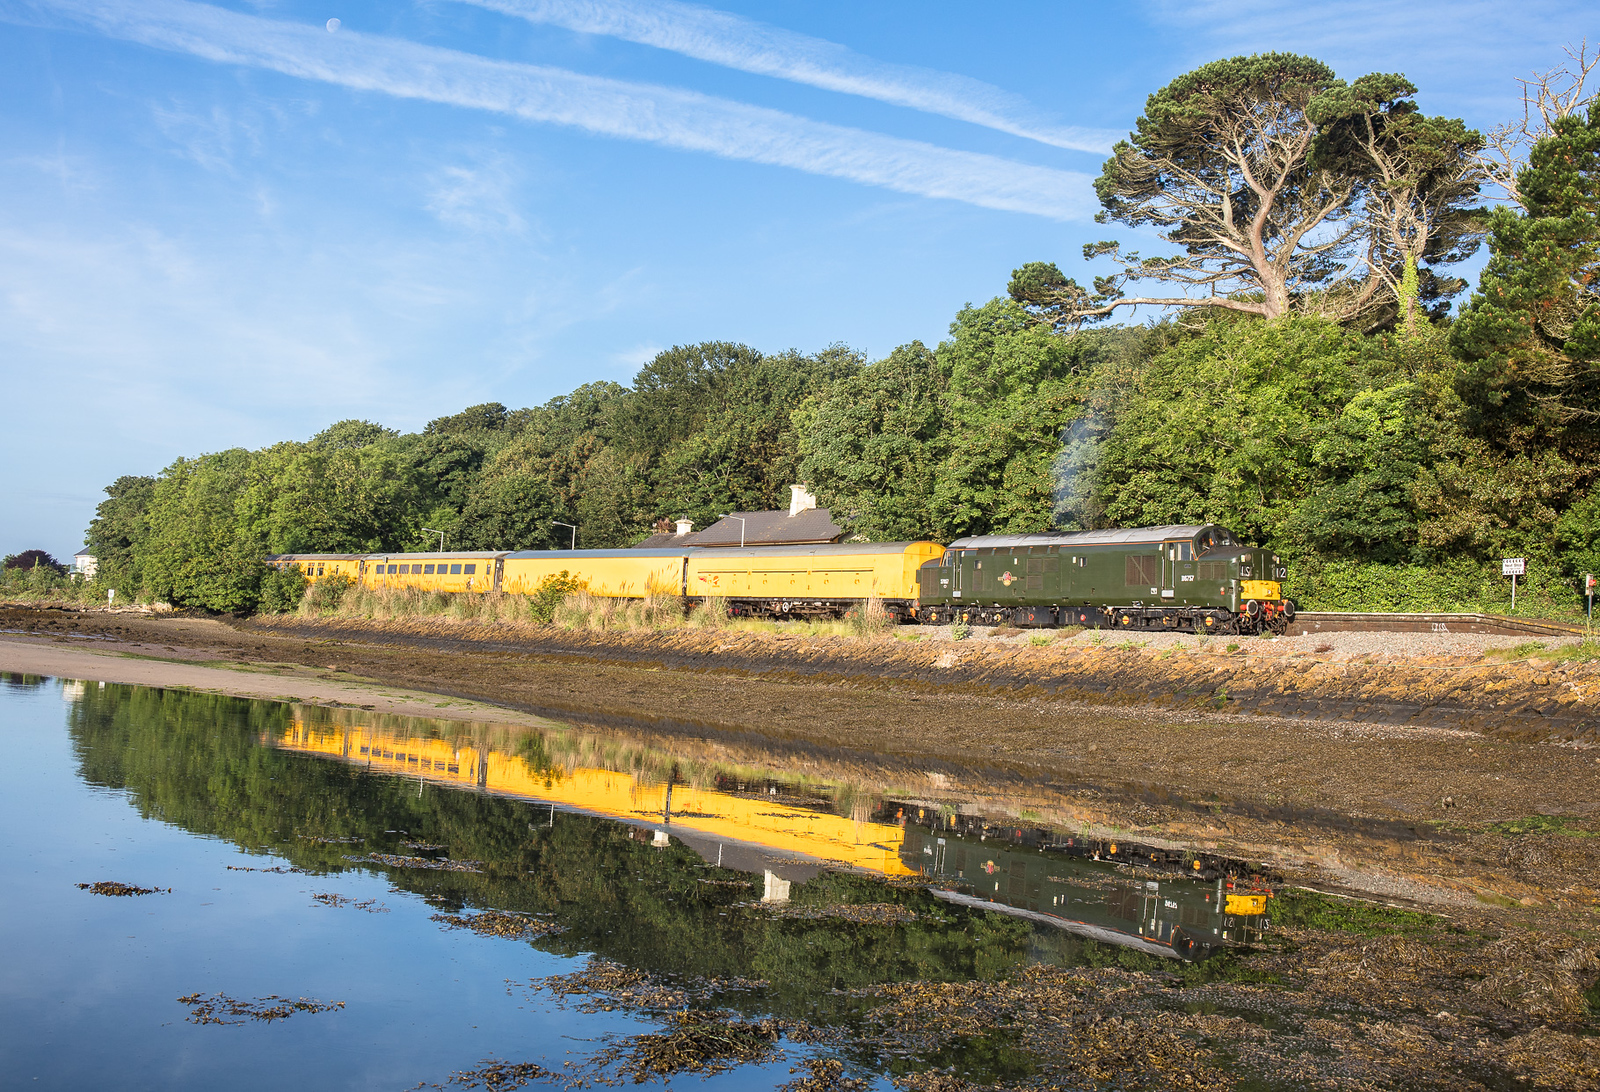 140617  With a hint of clag...37057 gets underway from Lelant with the 3Q52 2229 Exeter Riverside N.Y. to Penzance